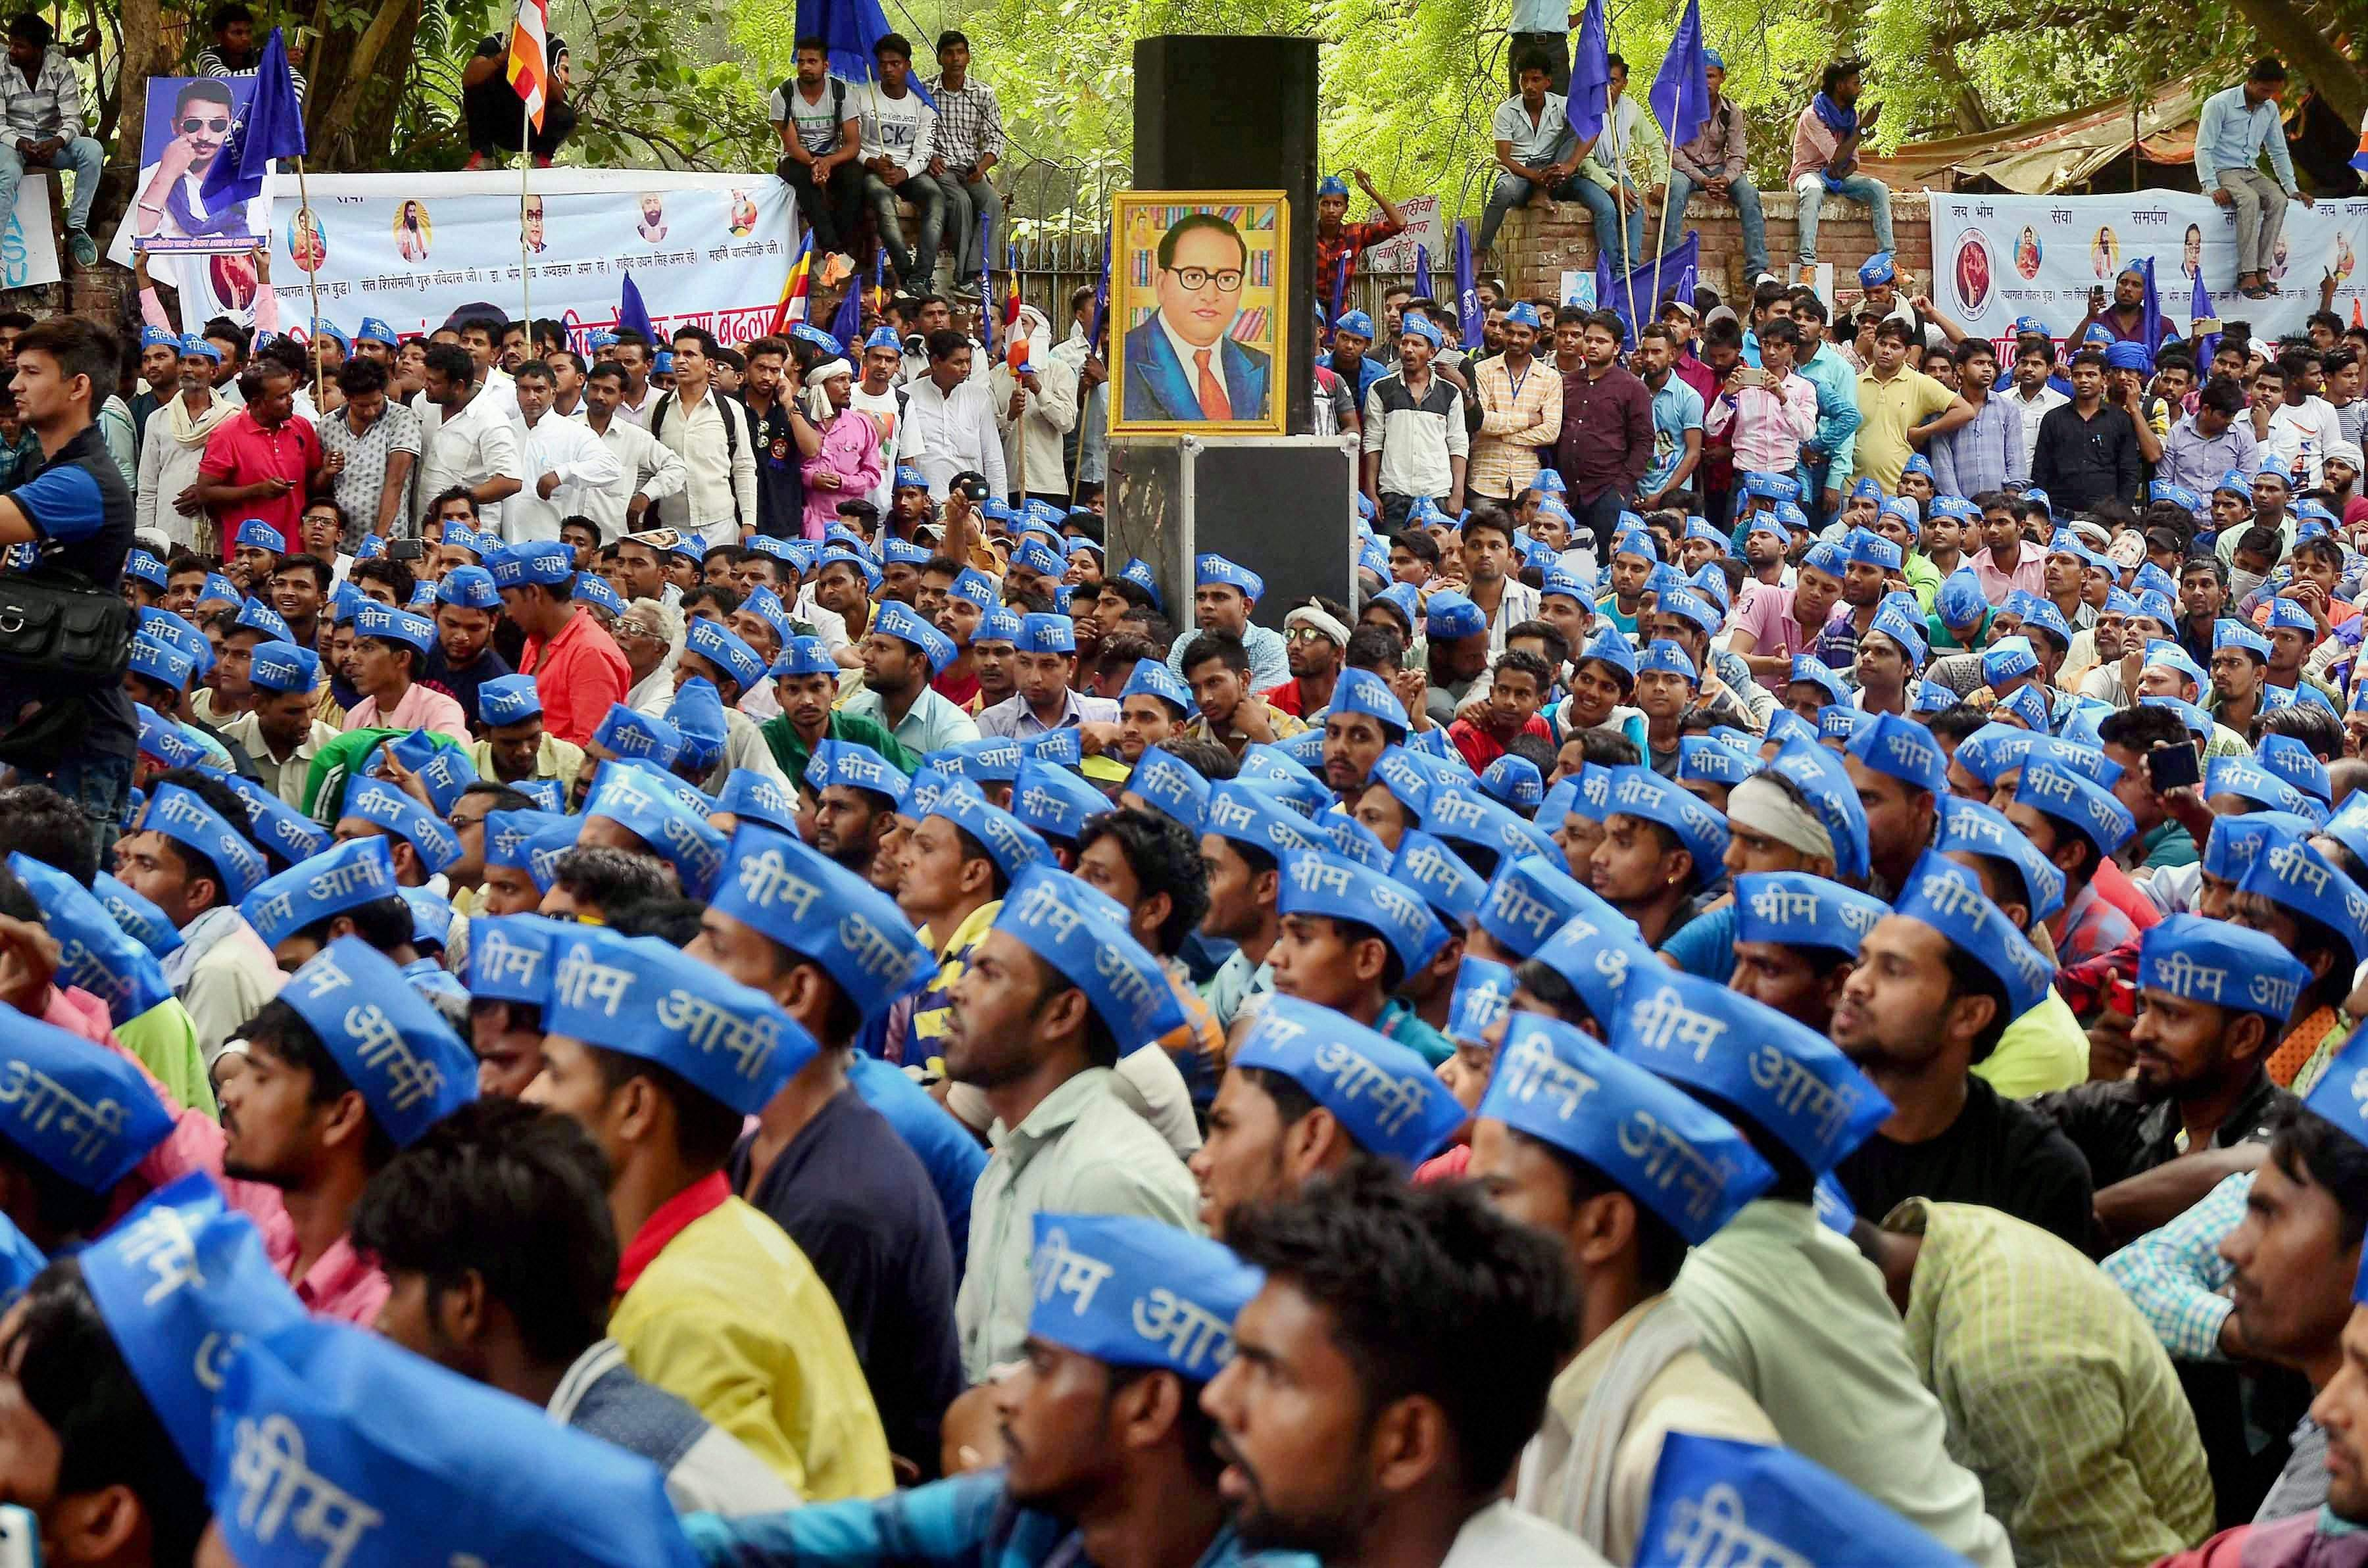 Saharanpur Protests Herald a New Phase in Dalit Politics